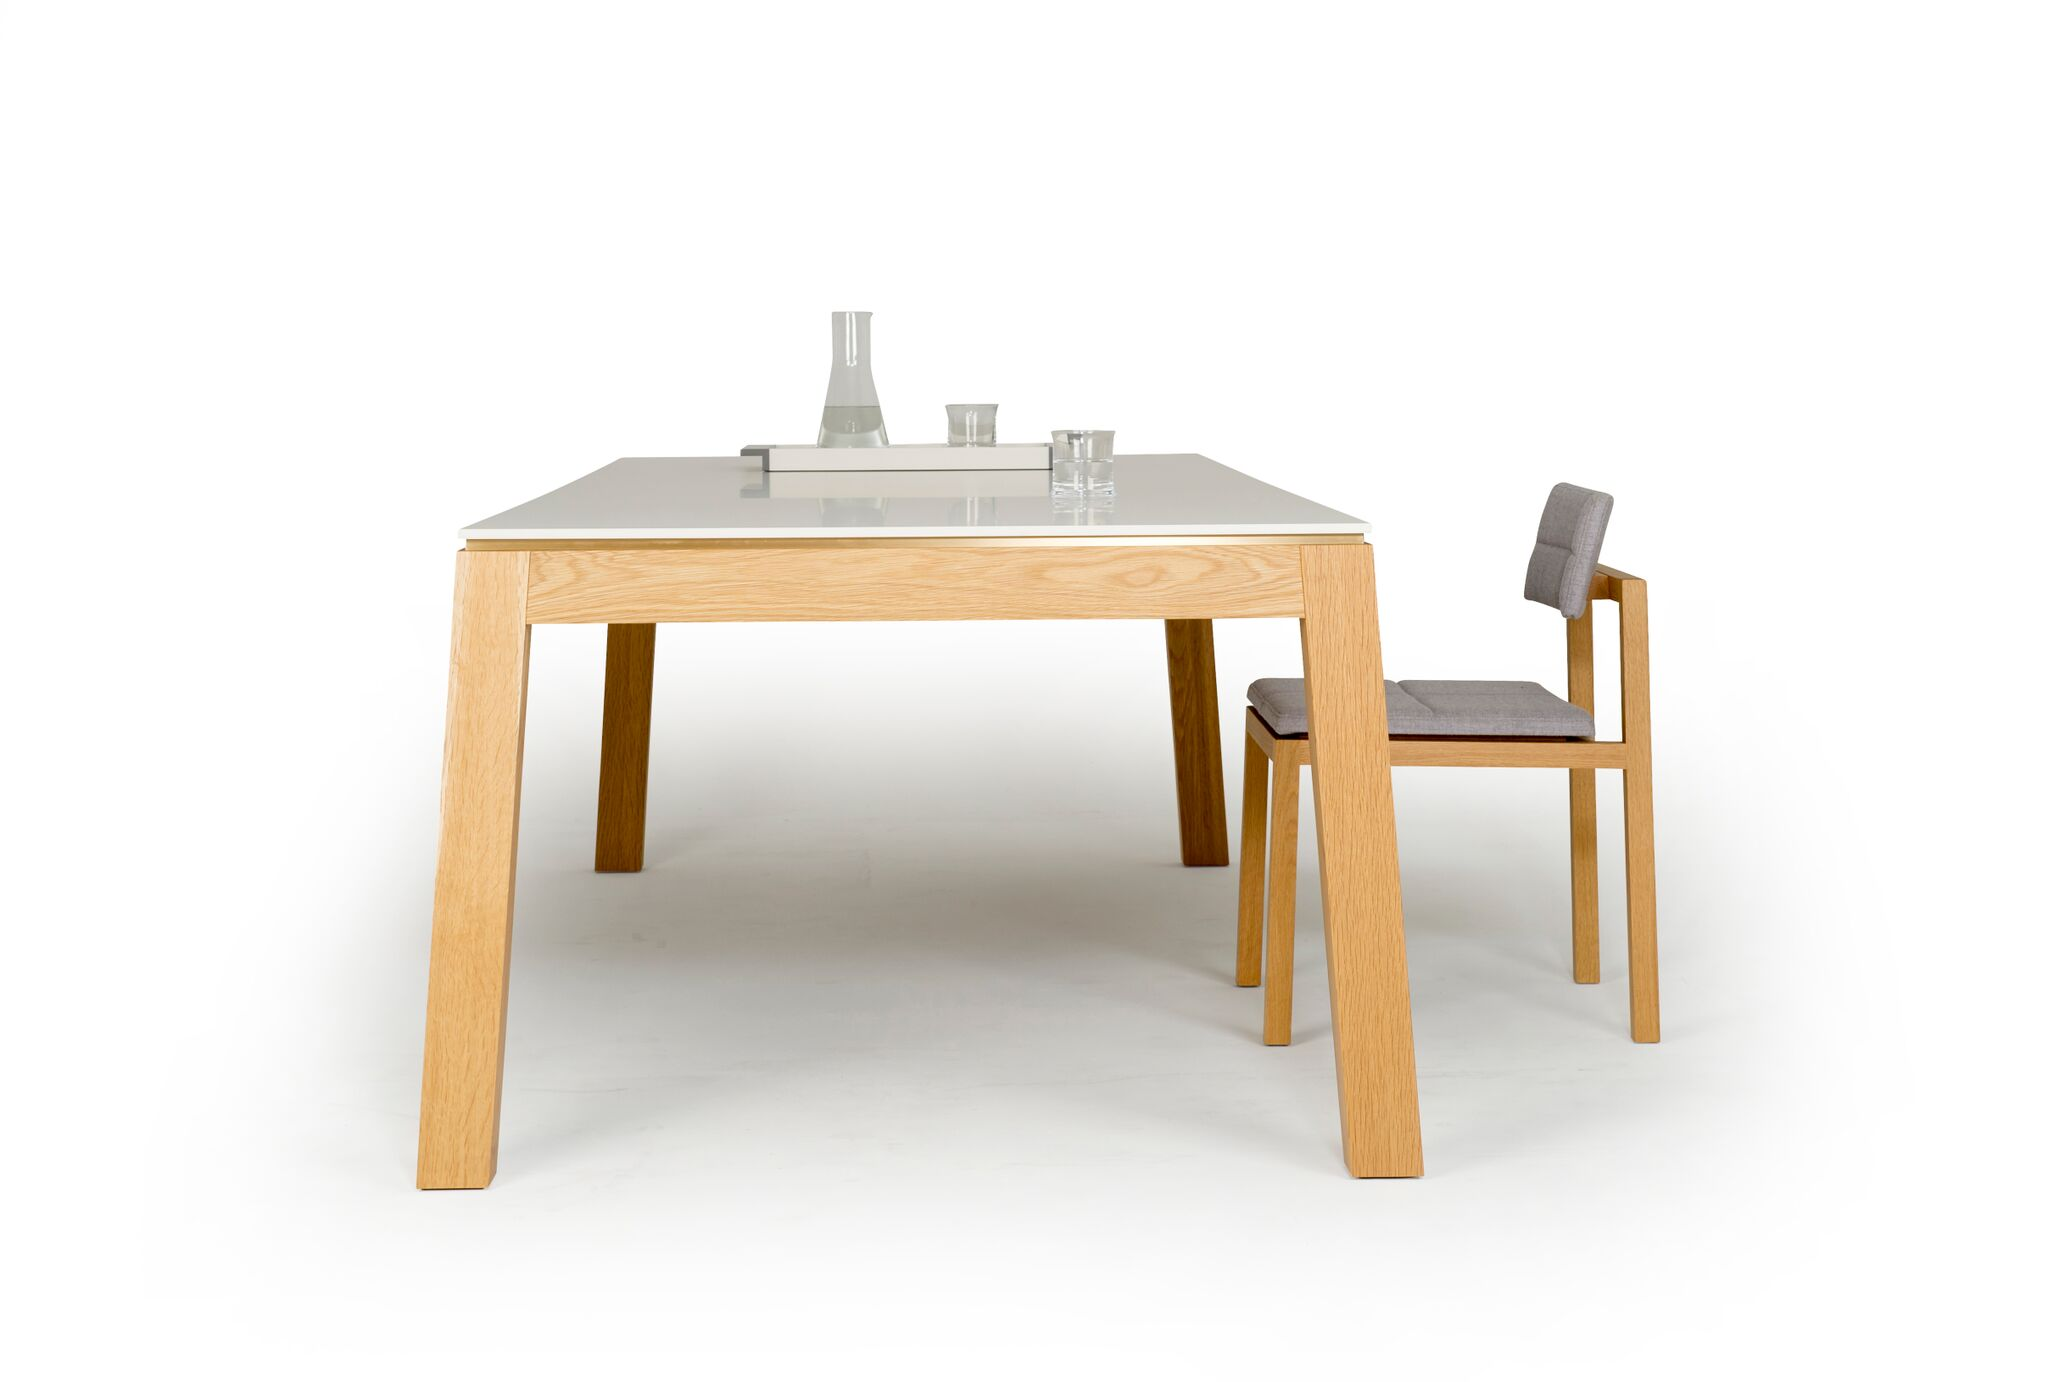 Gallery Of The Mila Table By Fraco Crea Local Australian Furniture Design Melbourne, Vic Image 13